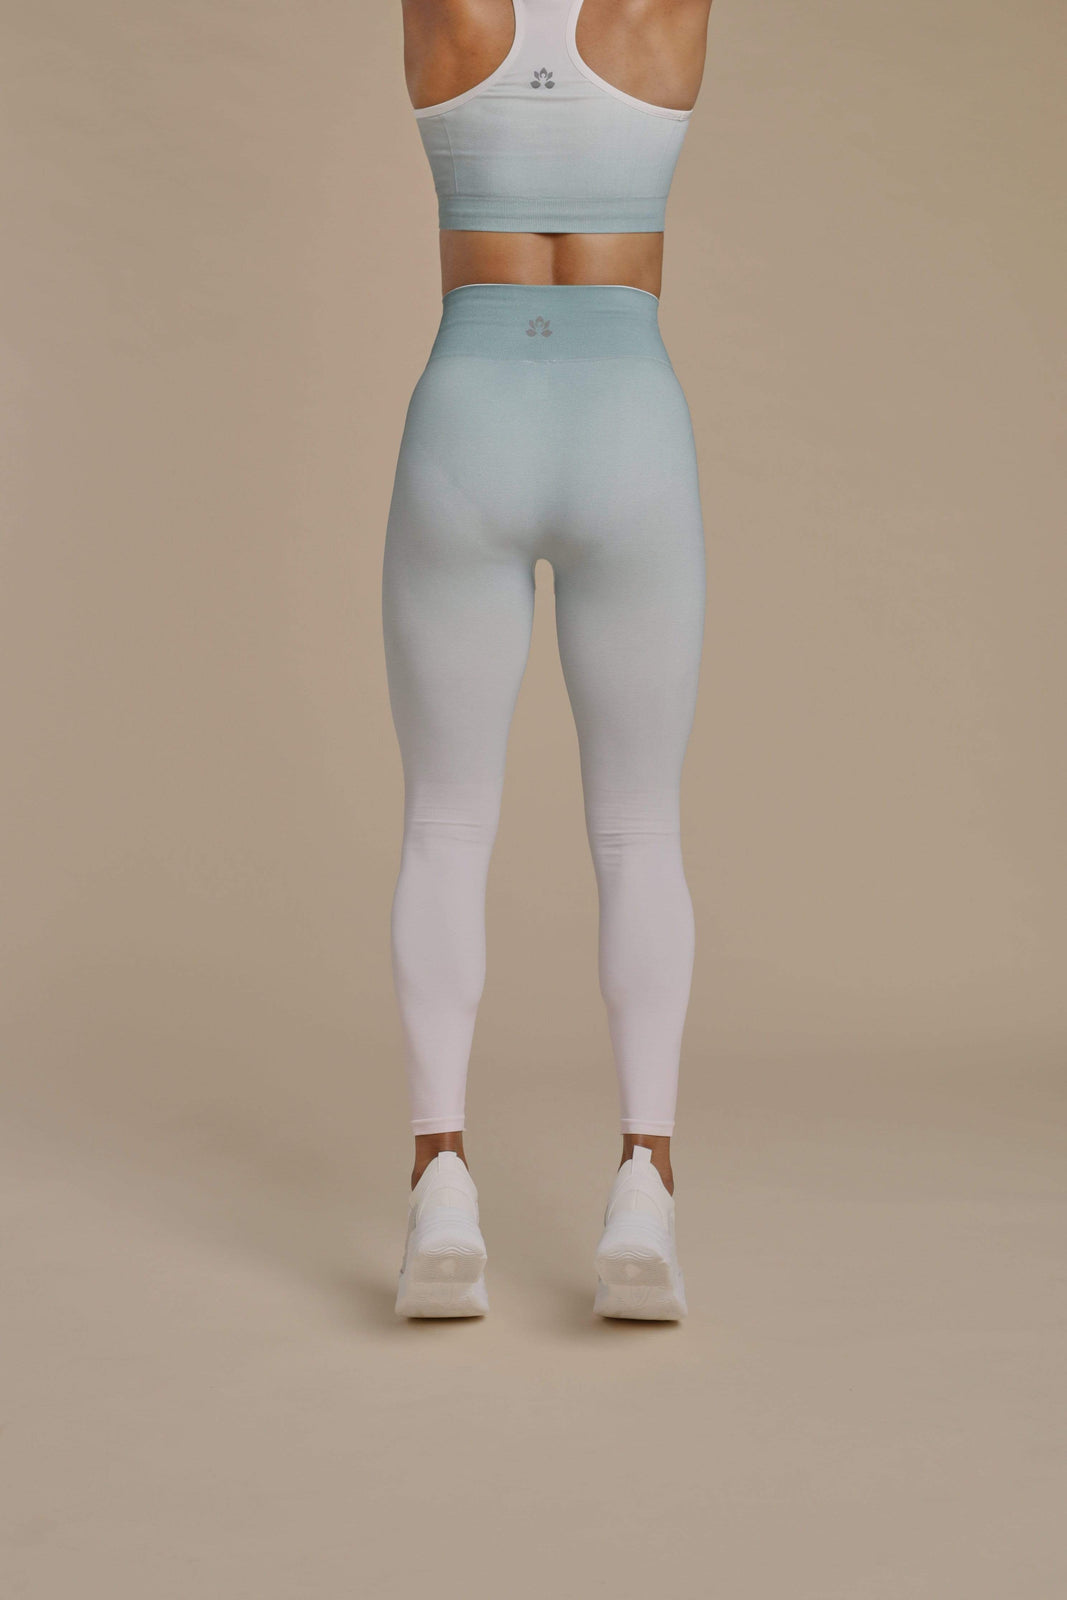 Seamless Ombré Leggings in Rising Lotus Bottoms Seamless Ombré Leggings